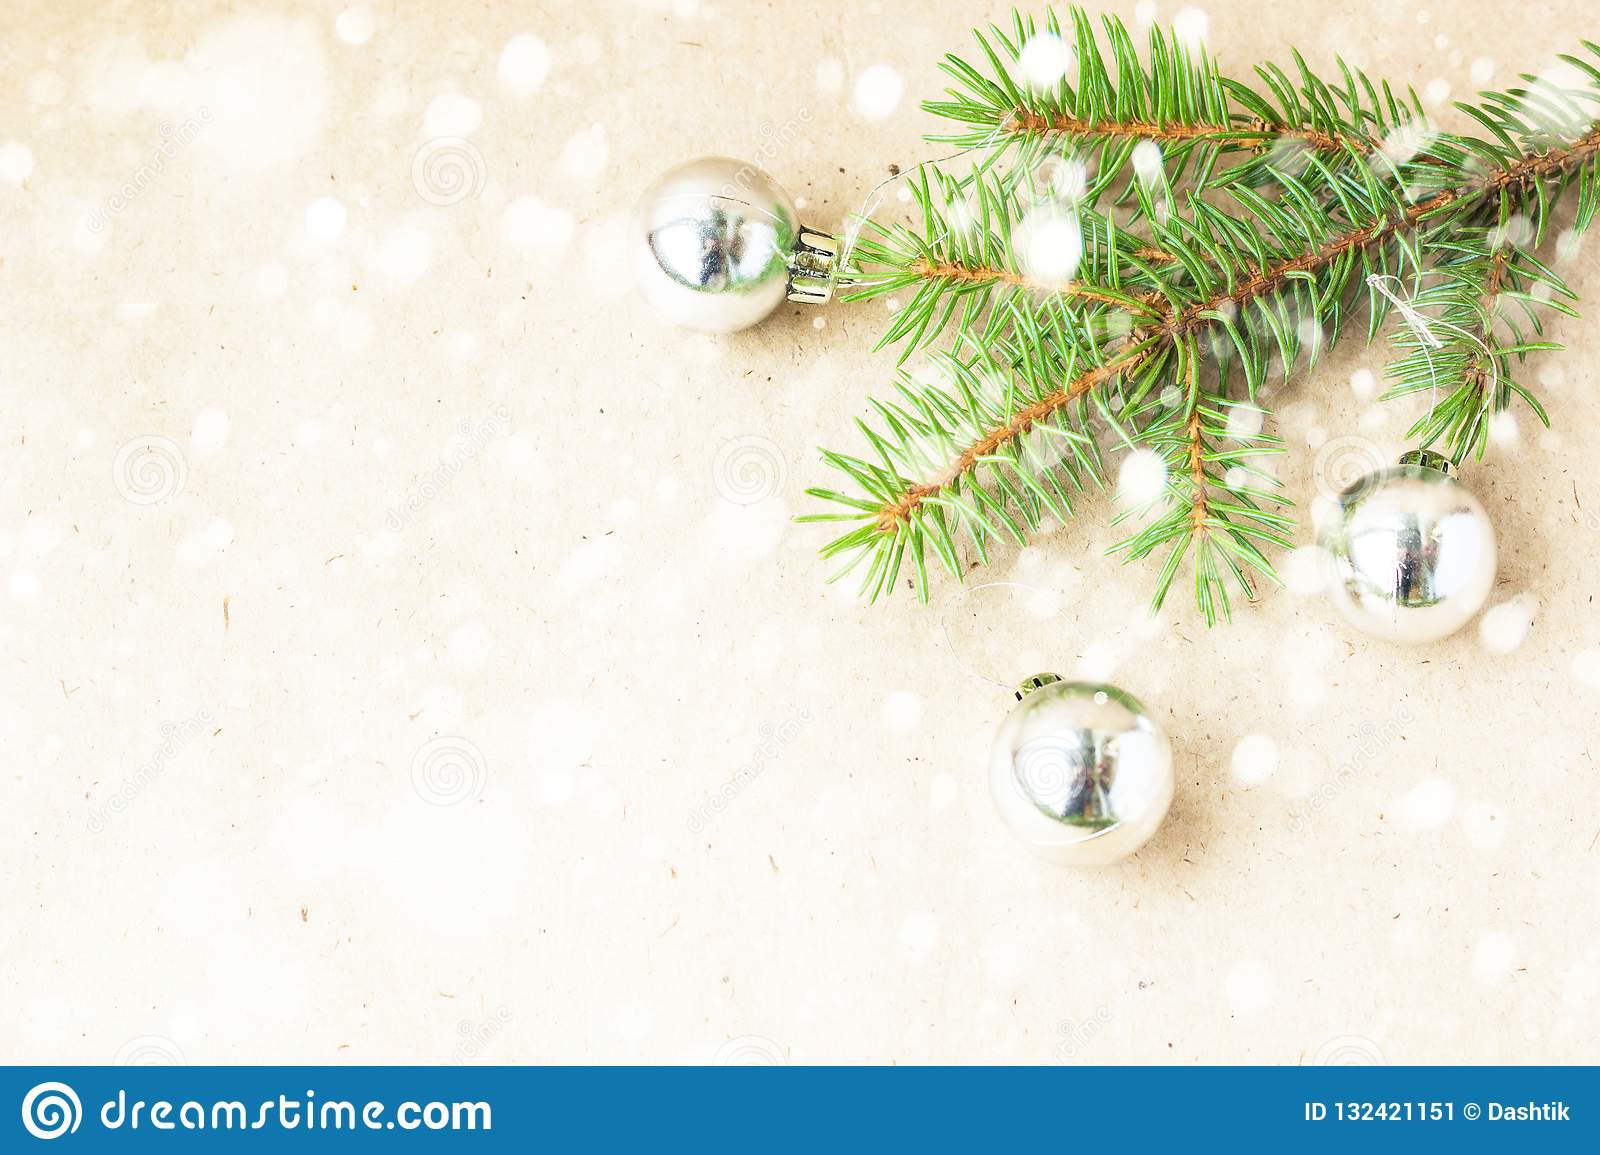 Fir tree branches decorated with silver christmas balls as border on a snow rustic holiday background frame